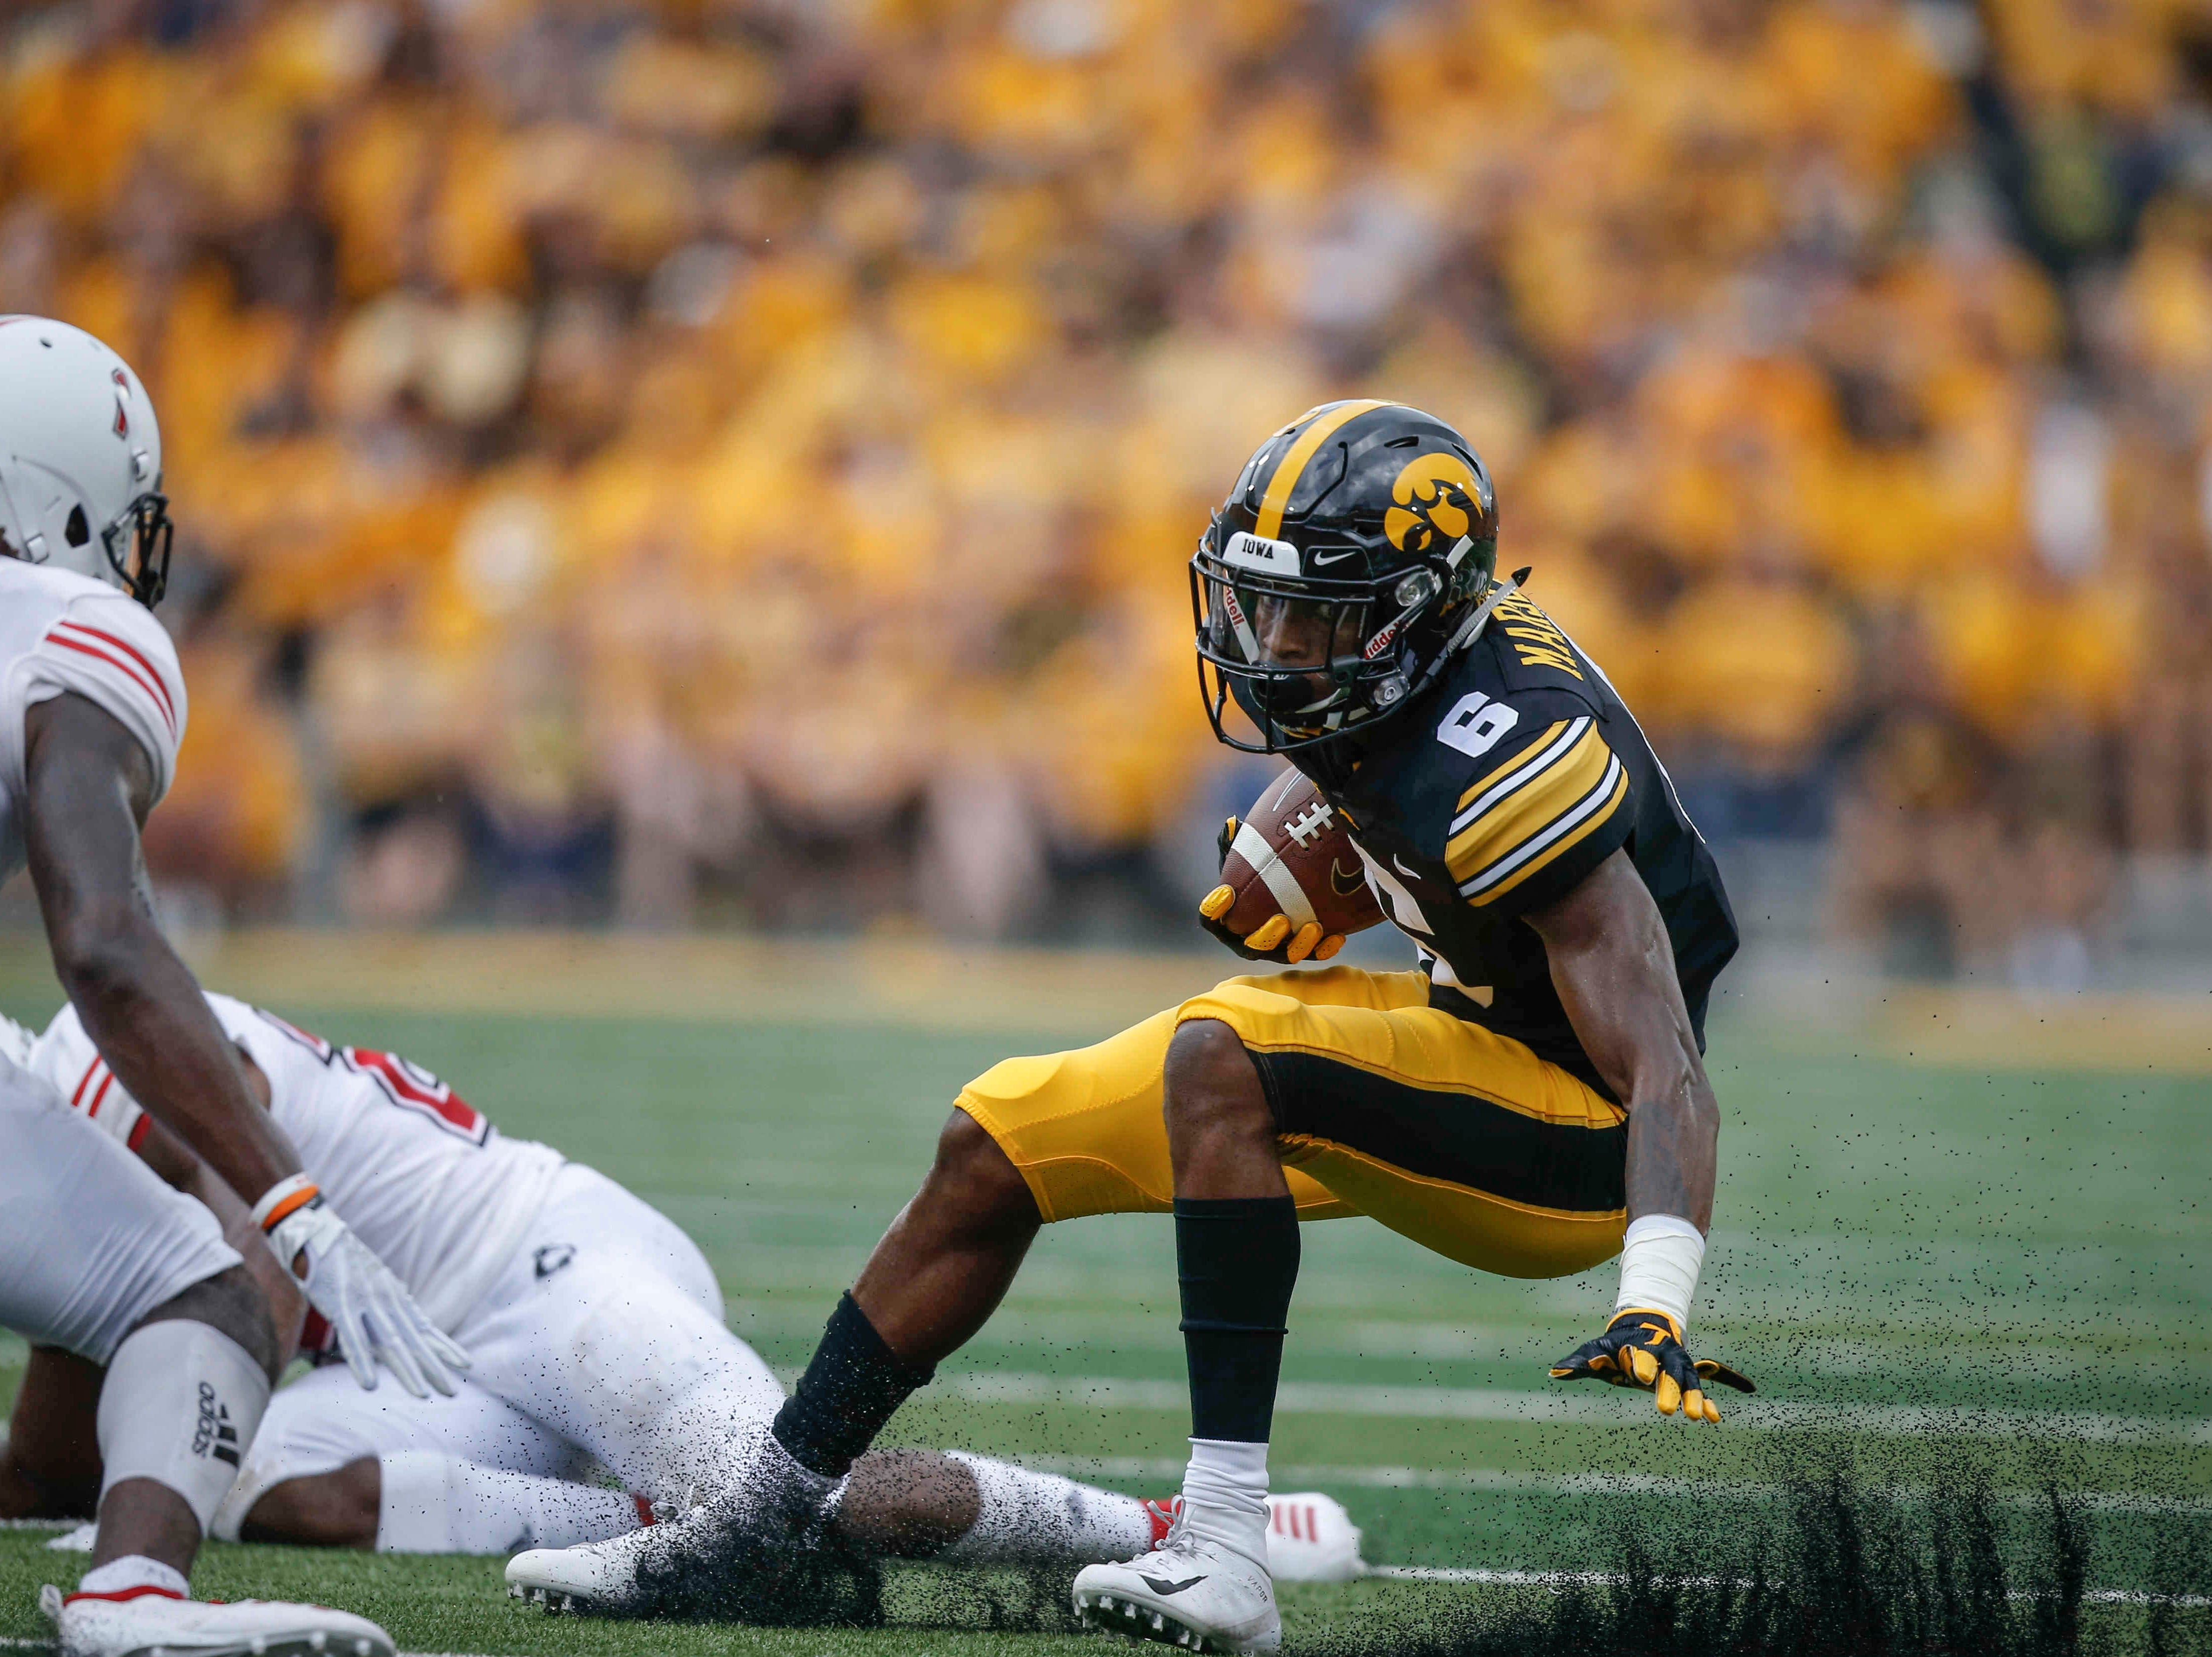 Iowa wide receiver Ihmir Smith-Marsette runs the ball in the first quarter against Northern Illinois on Saturday, Sept. 1, 2018, at Kinnick Stadium in Iowa City.